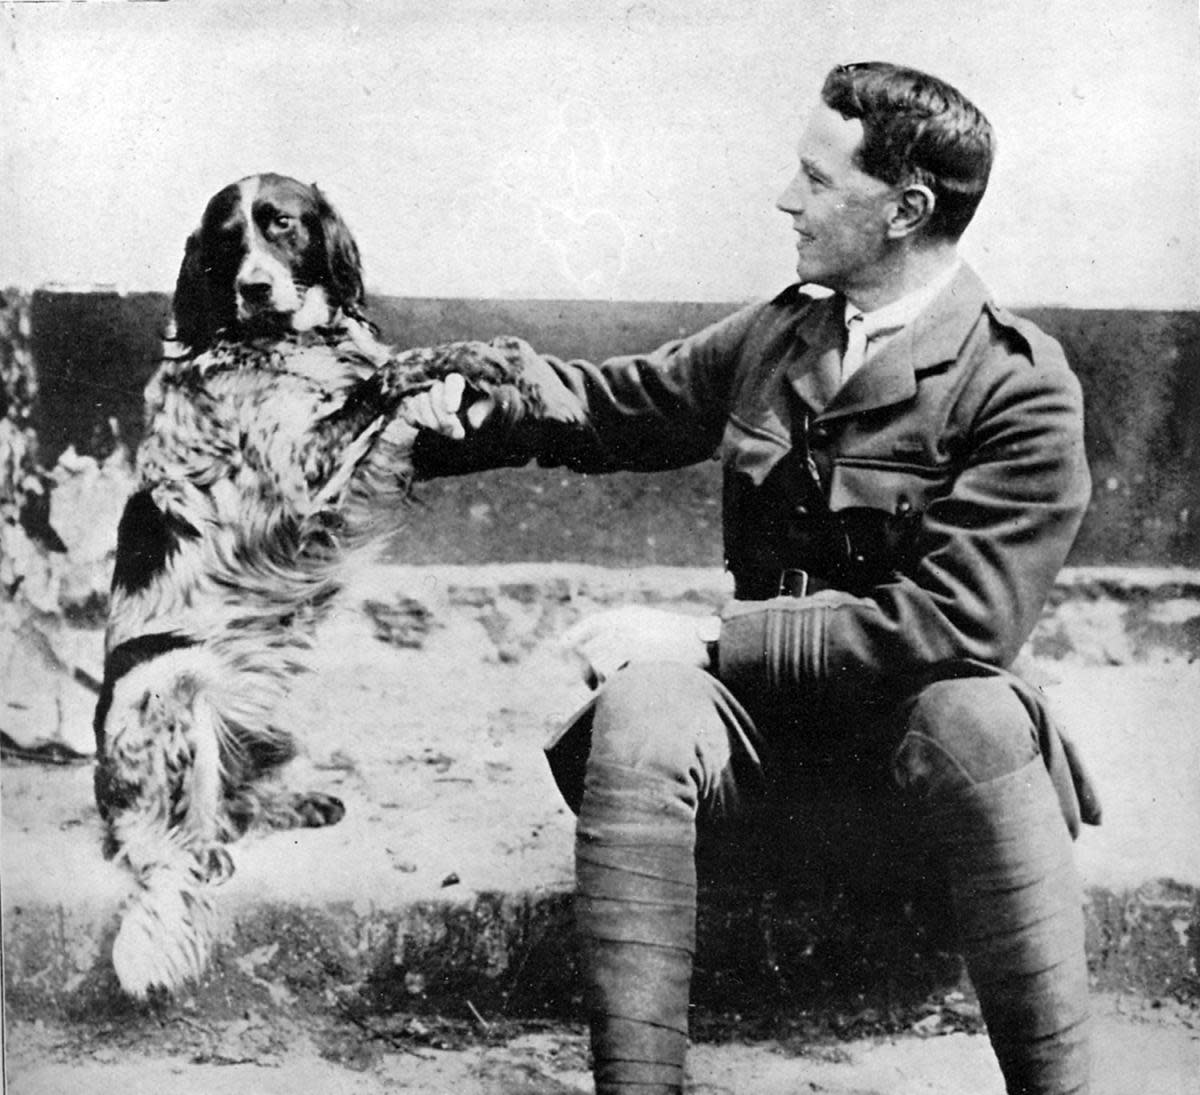 Poet John McCrae. (Credit: Culture Club/Getty Images)